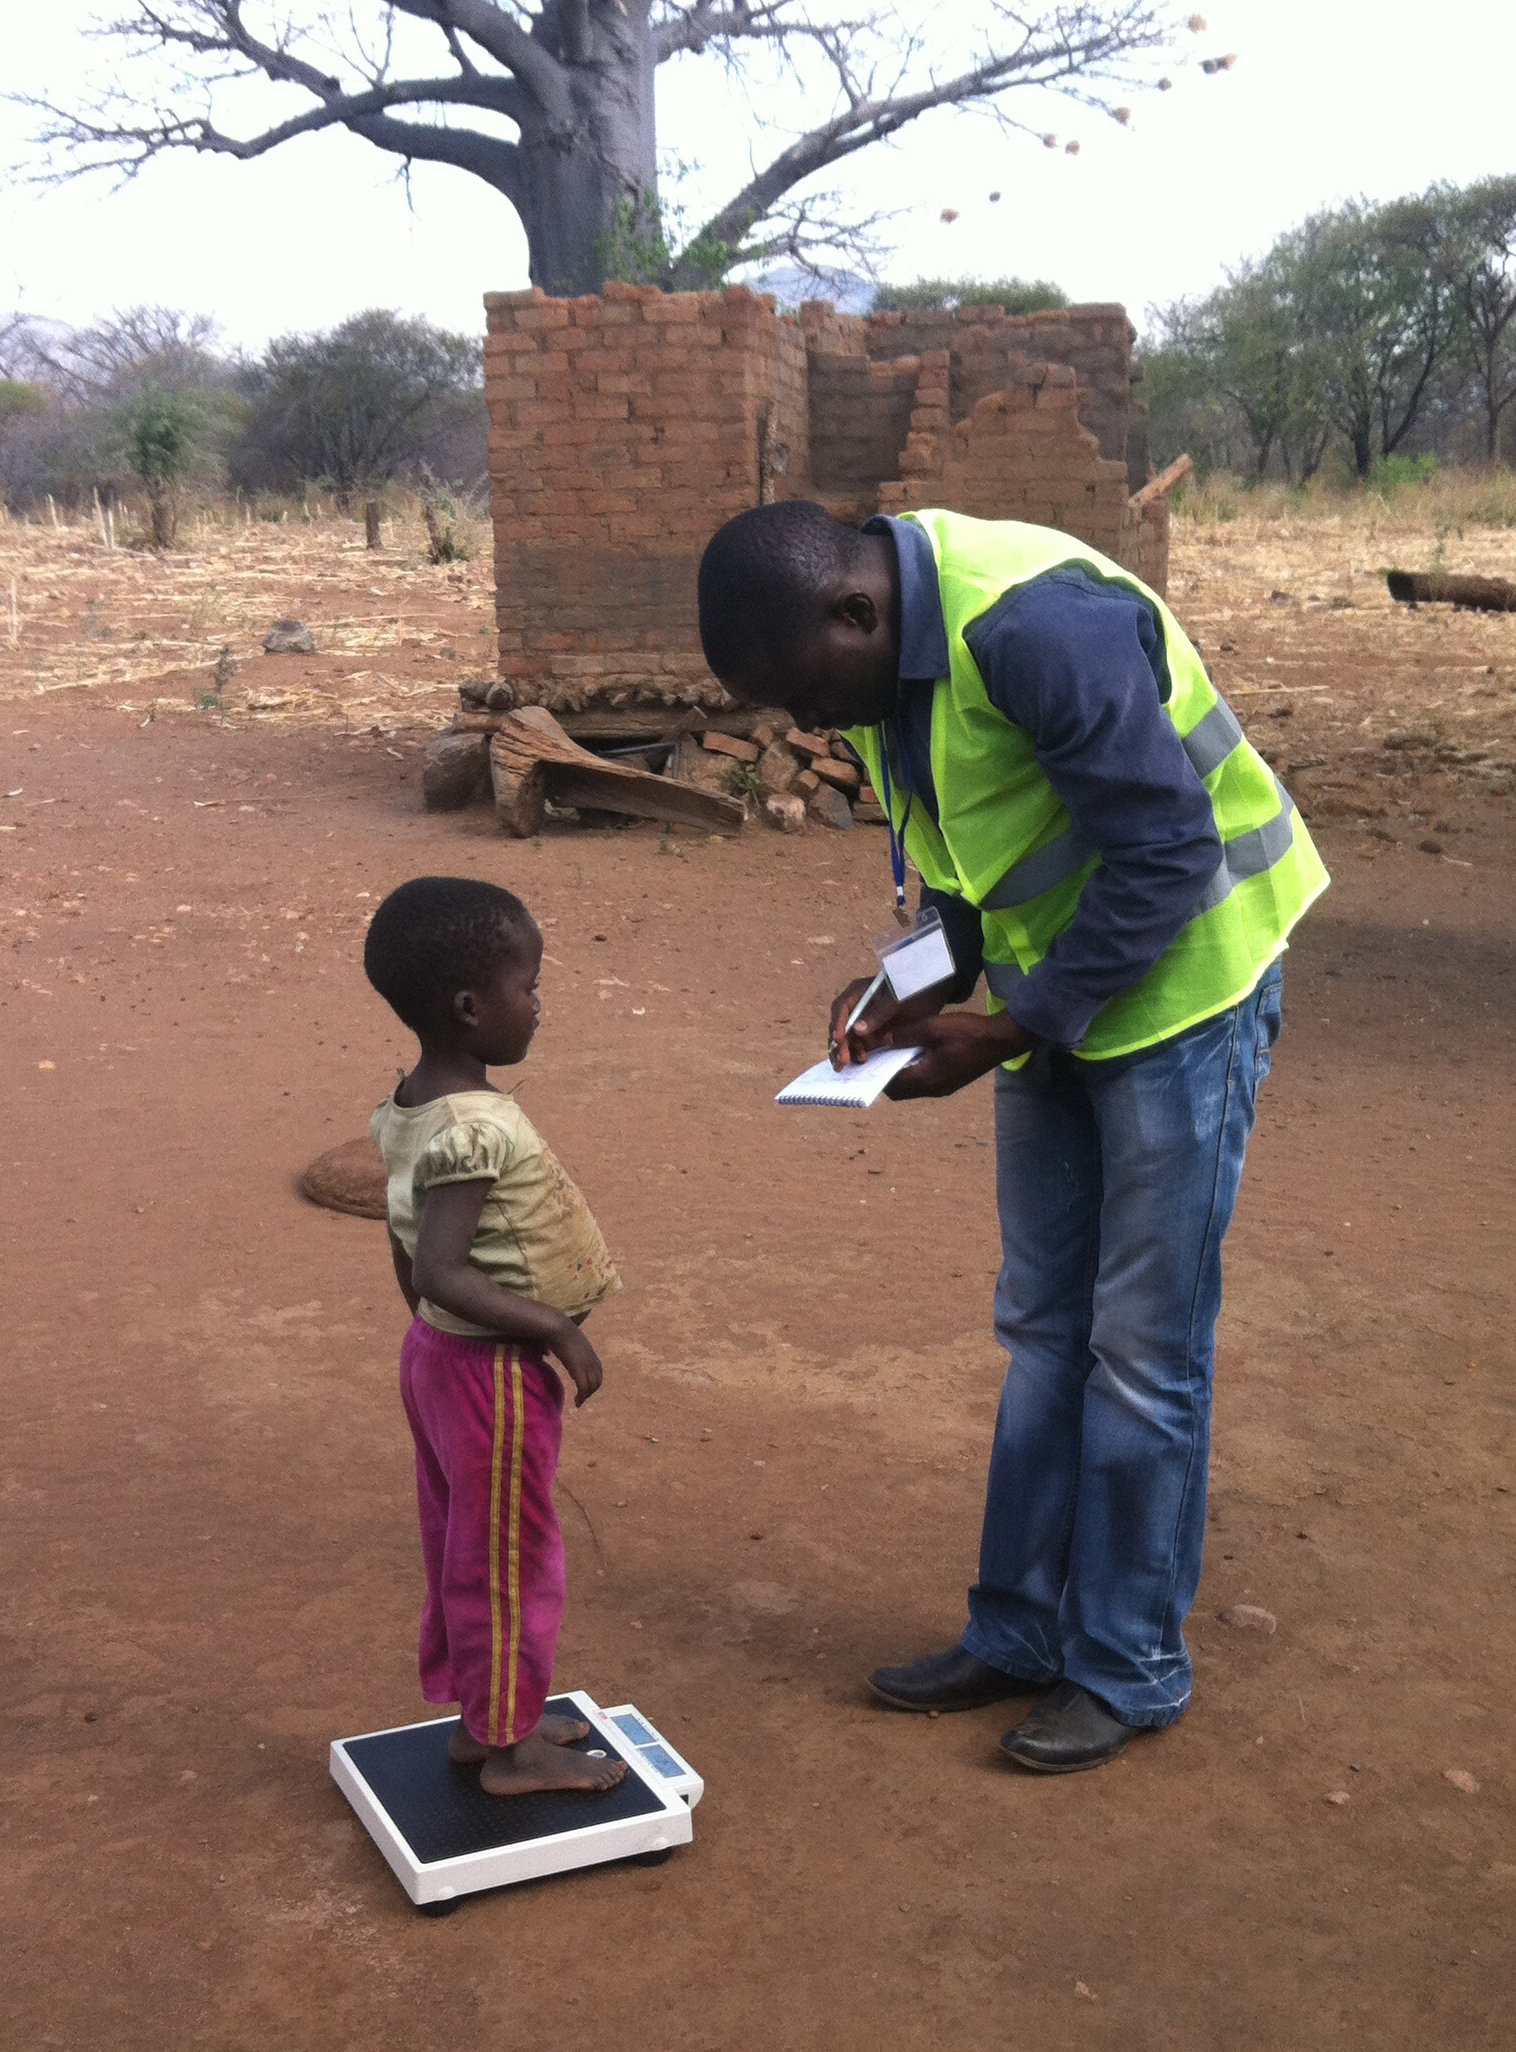 Man weighing child in Zimbabwe